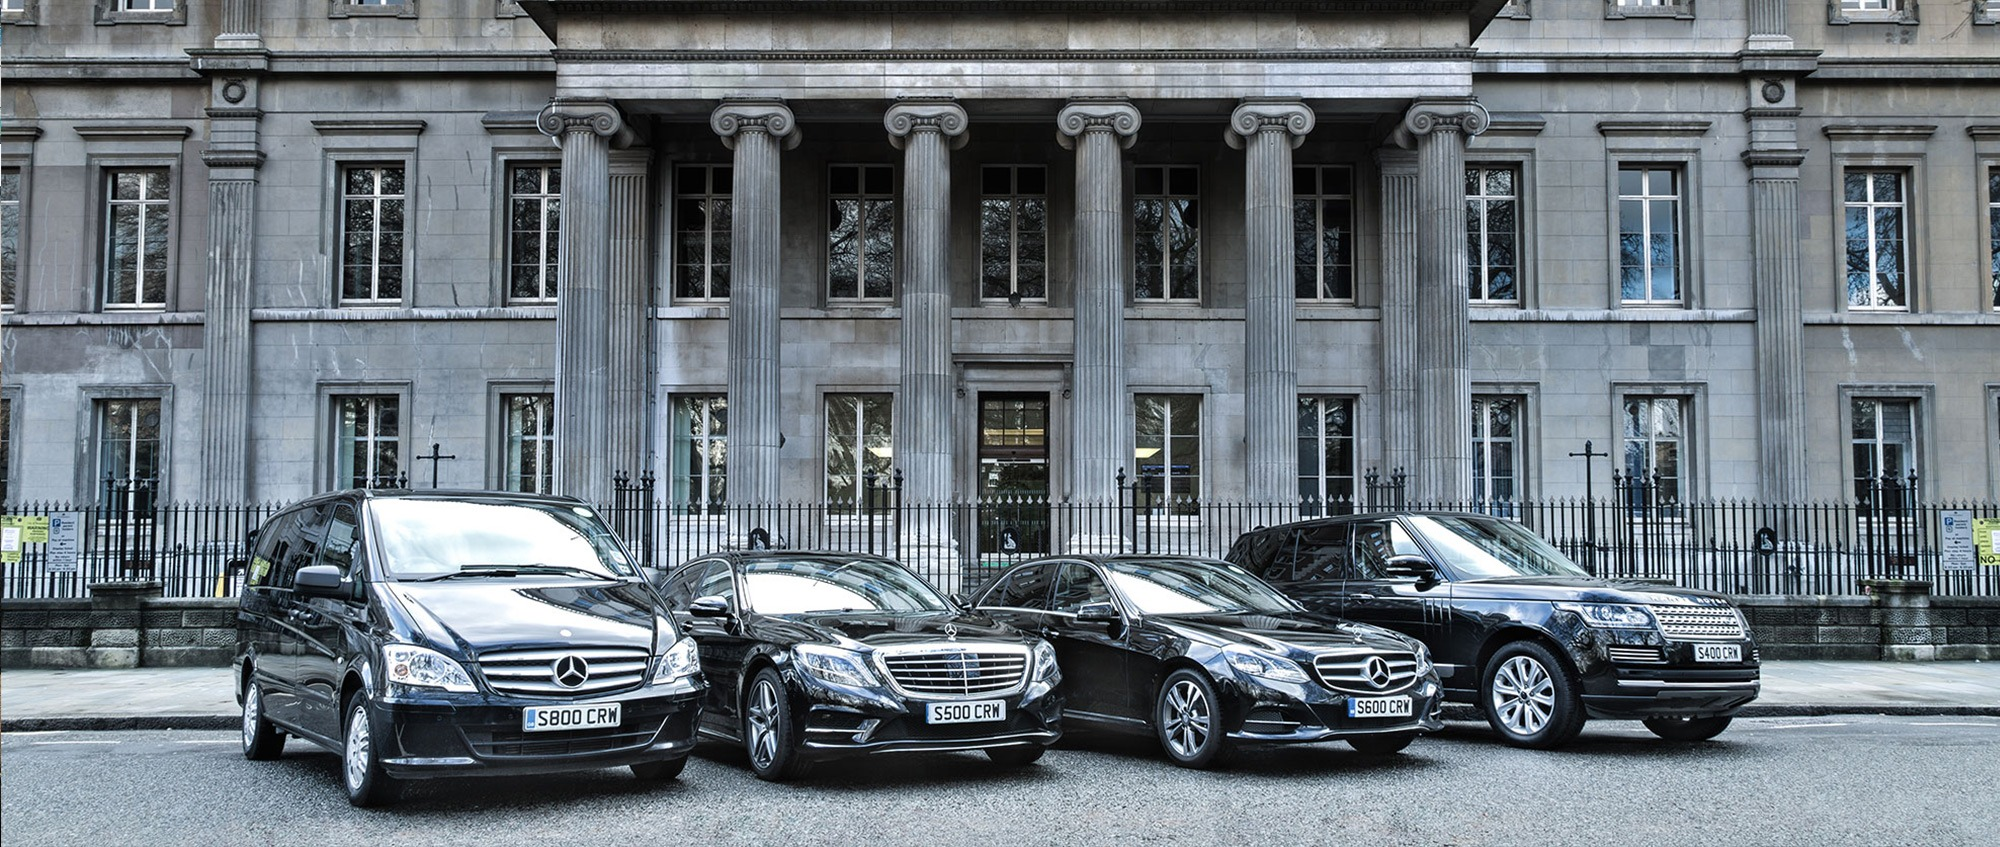 Maykenbel Apartments Luxury Car Chauffeur Service